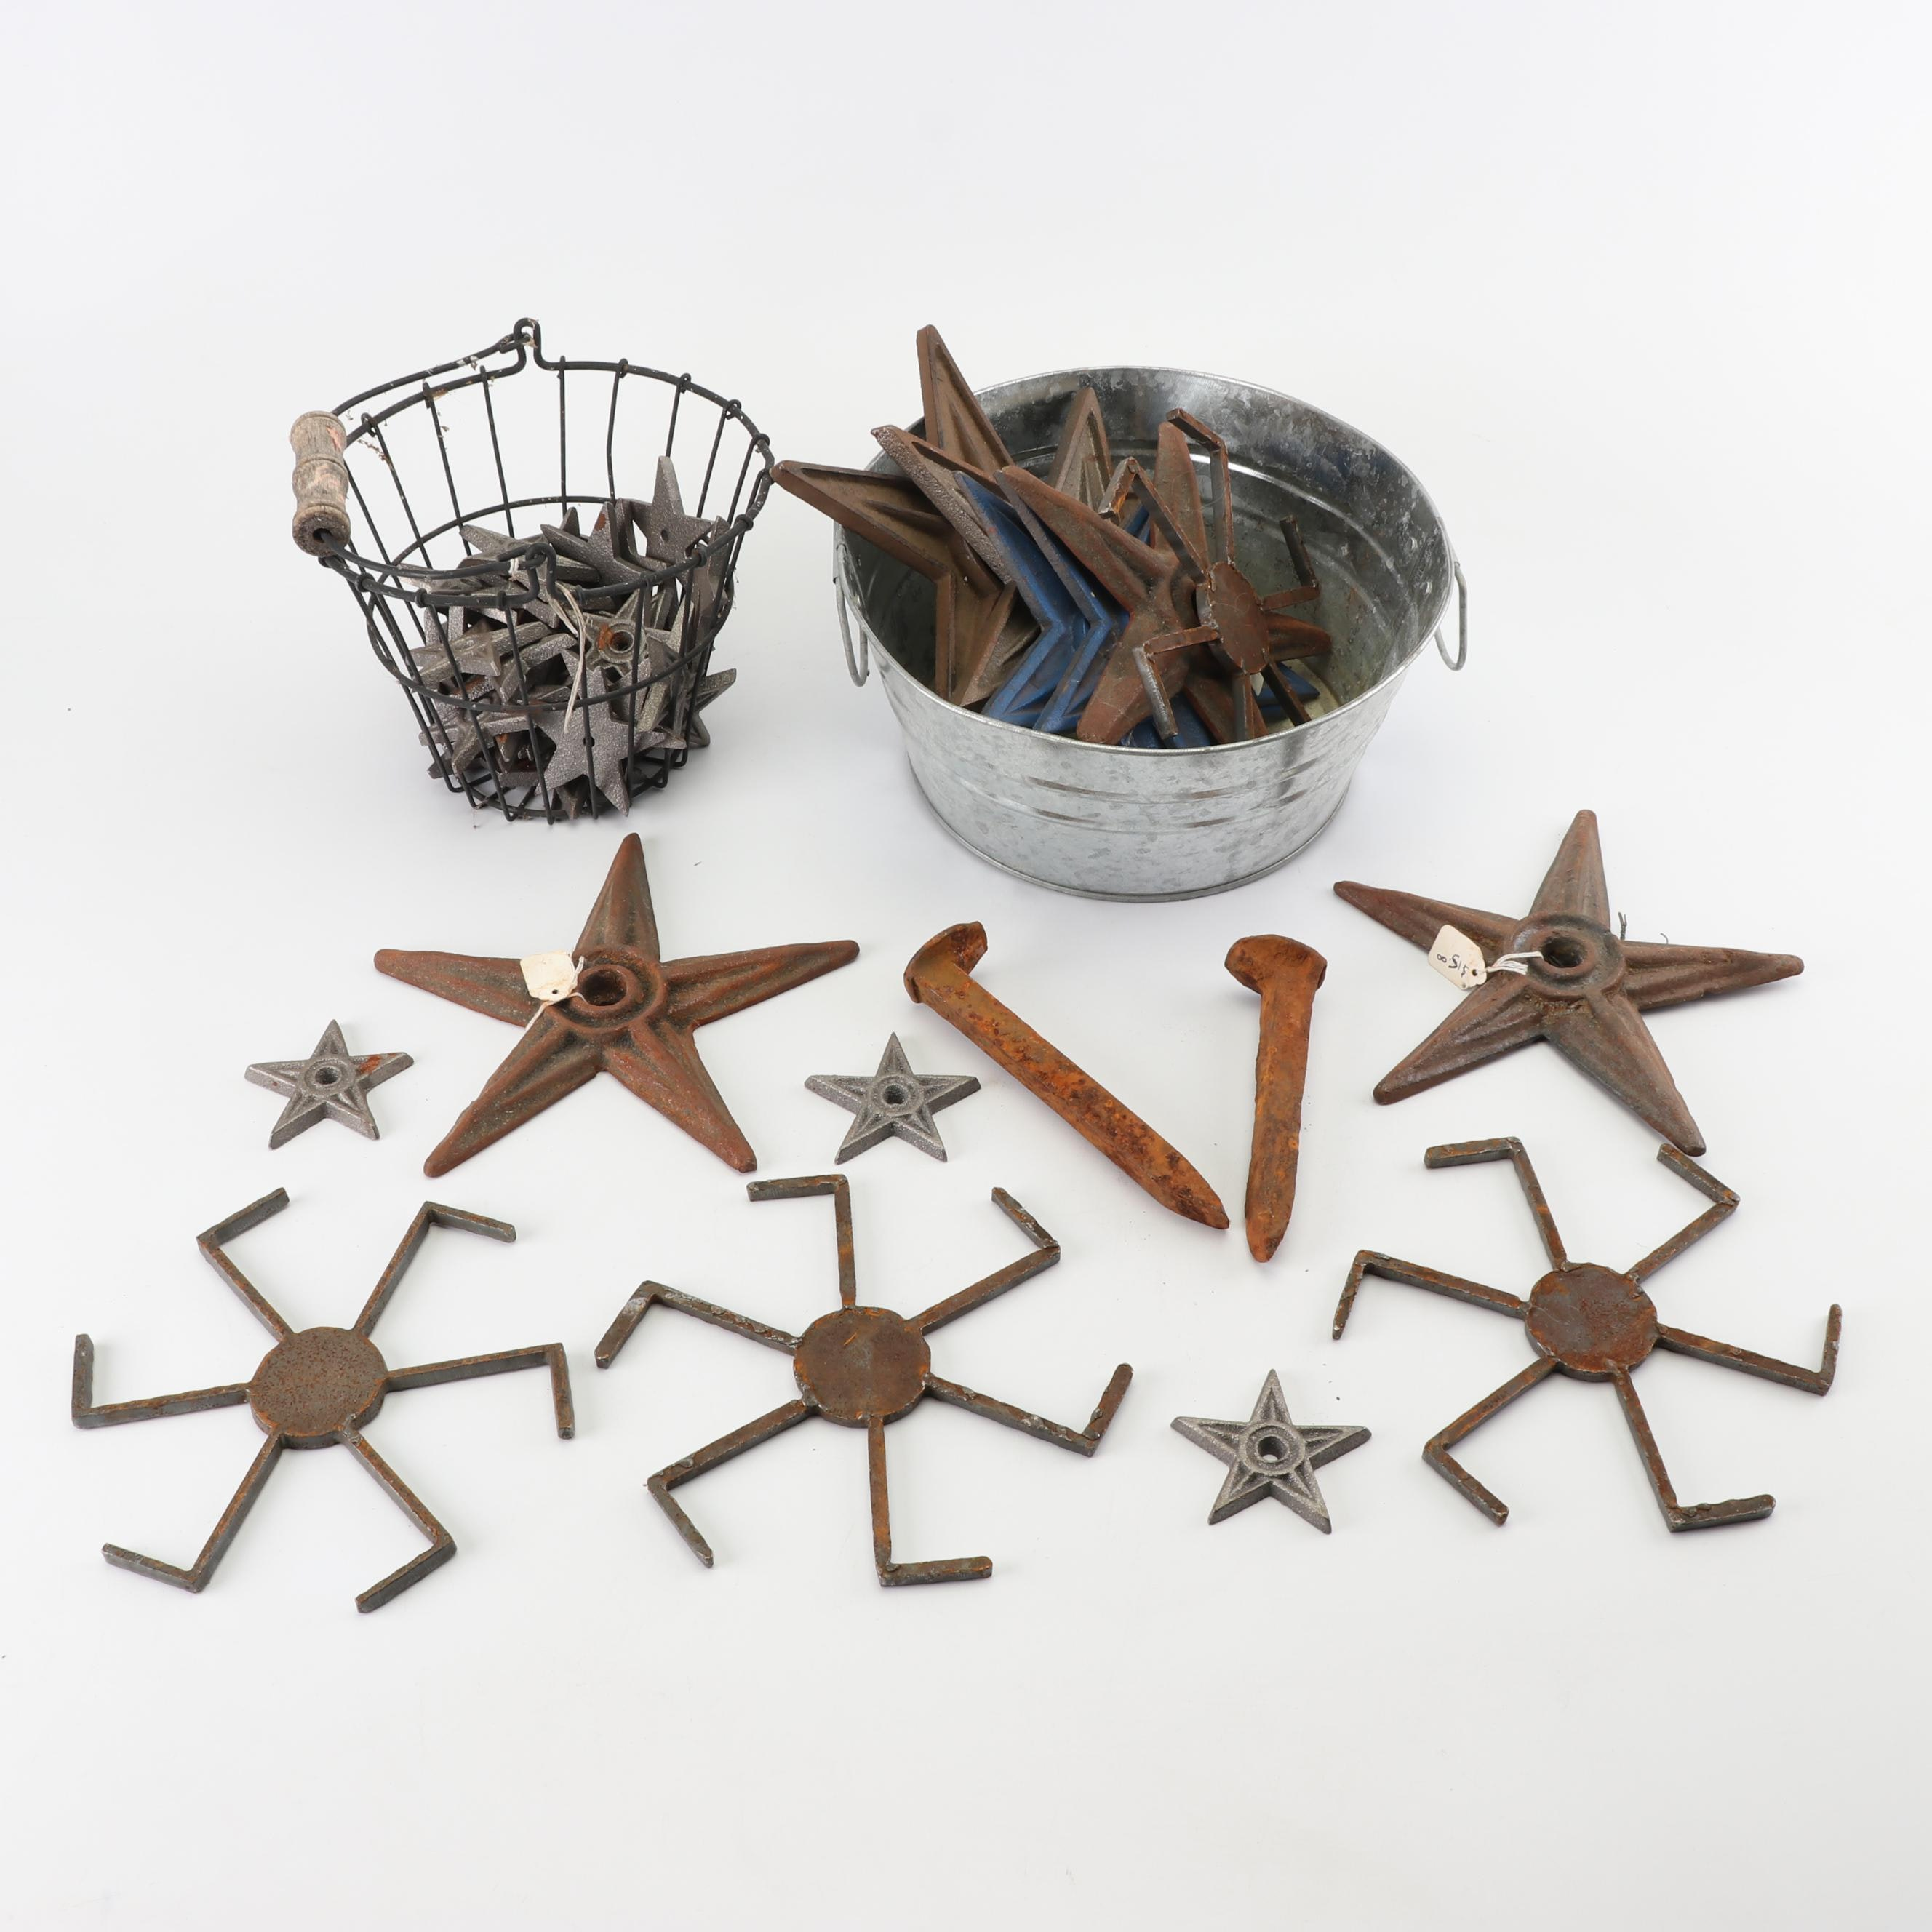 Decorative Cast Iron Stars and Spikes